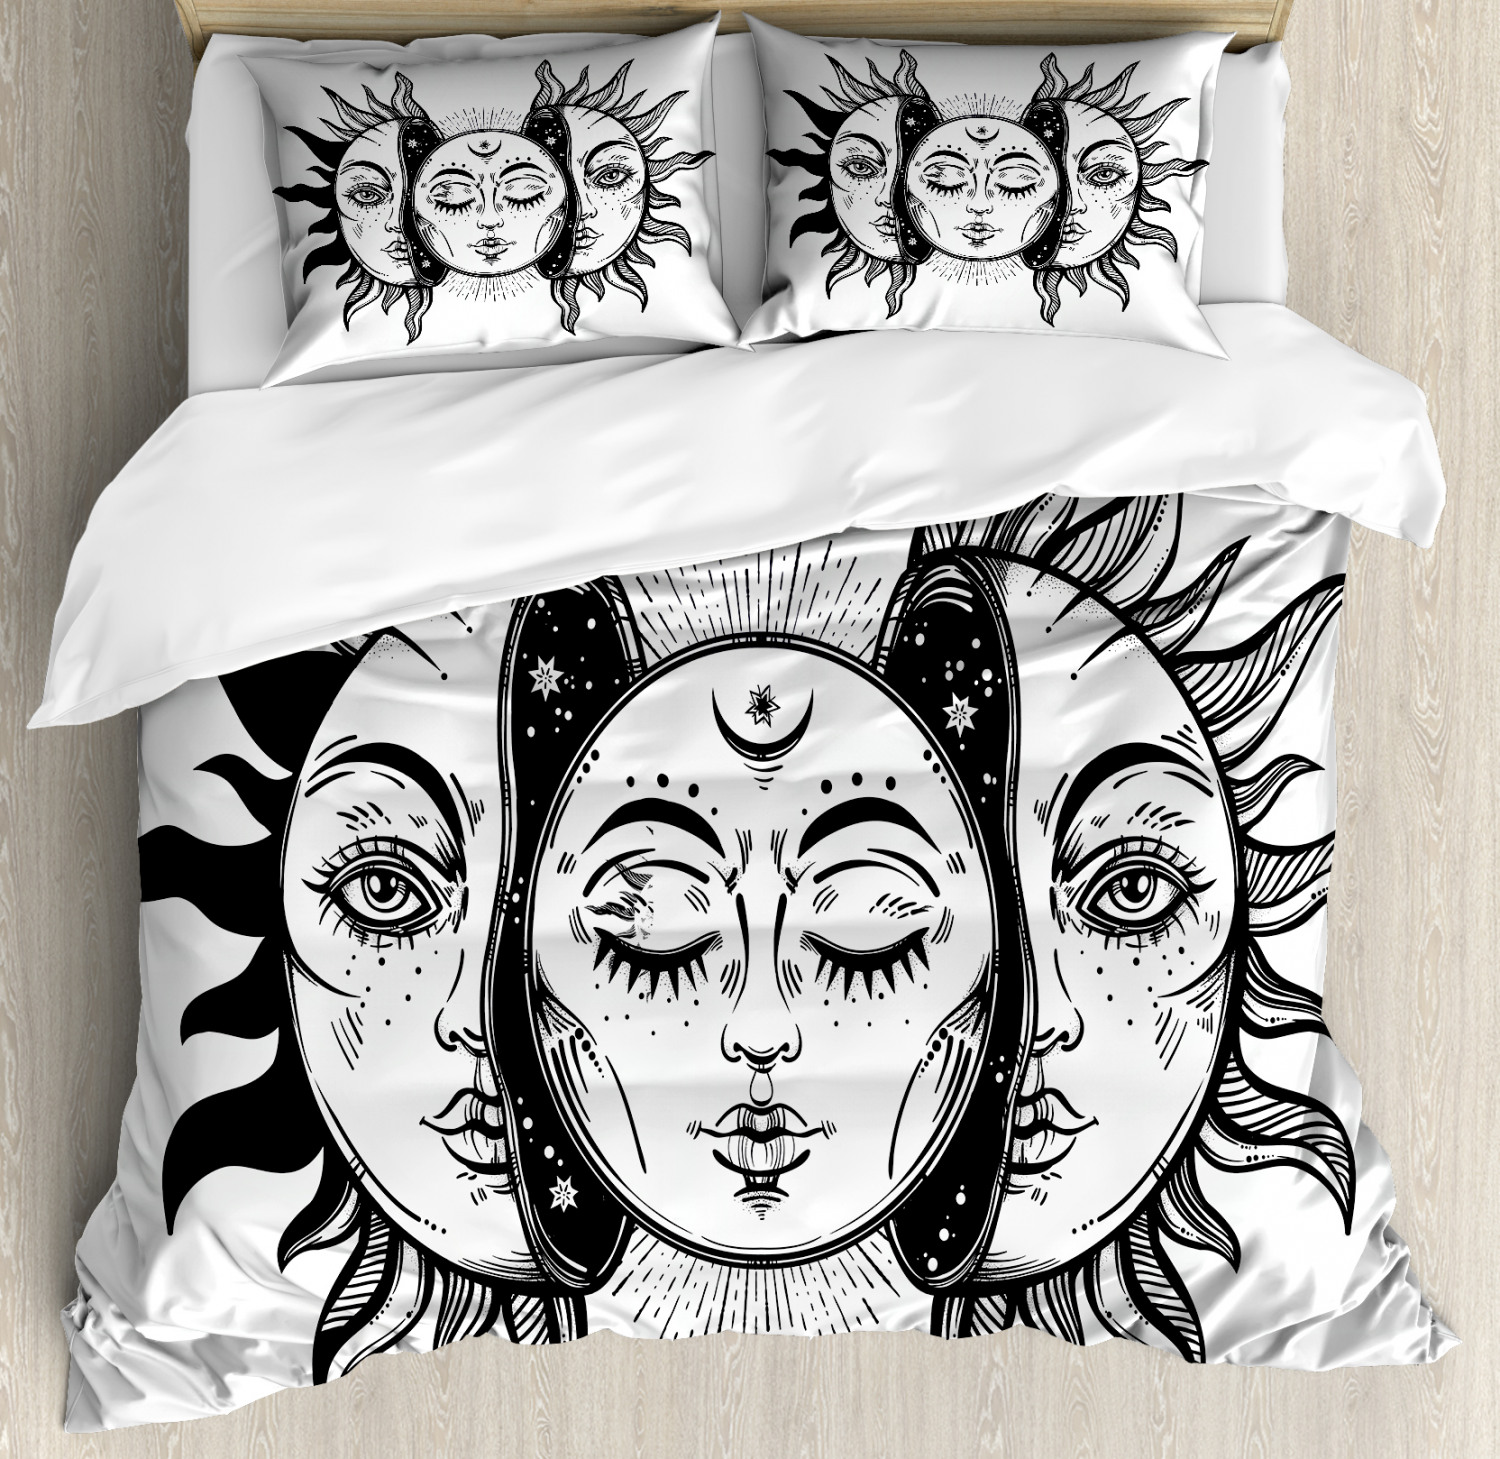 Moon Duvet Cover Set with Pillow Shams Monochrome Sun and Moon Print